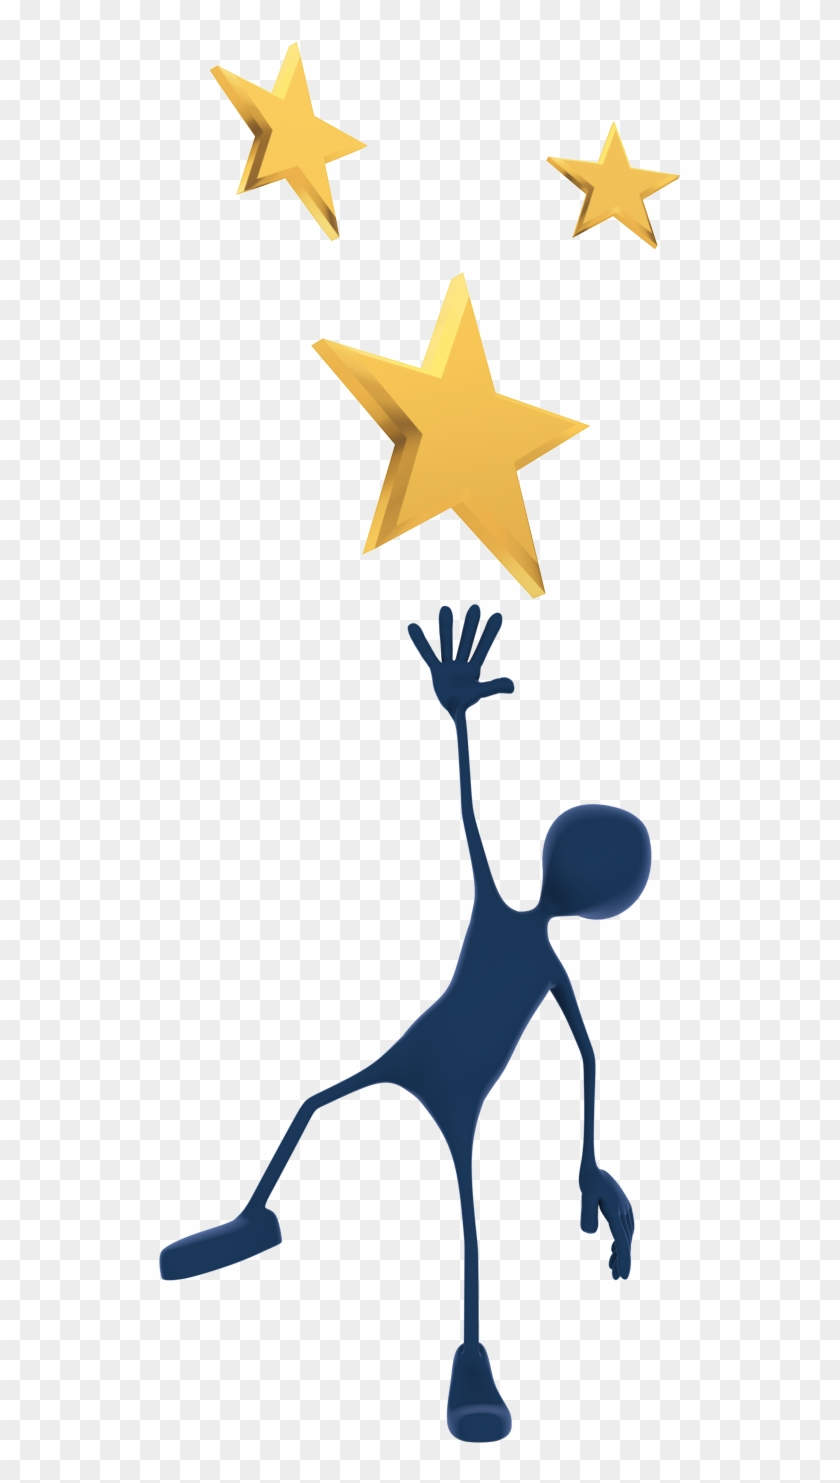 Reach For The Stars Clipart.